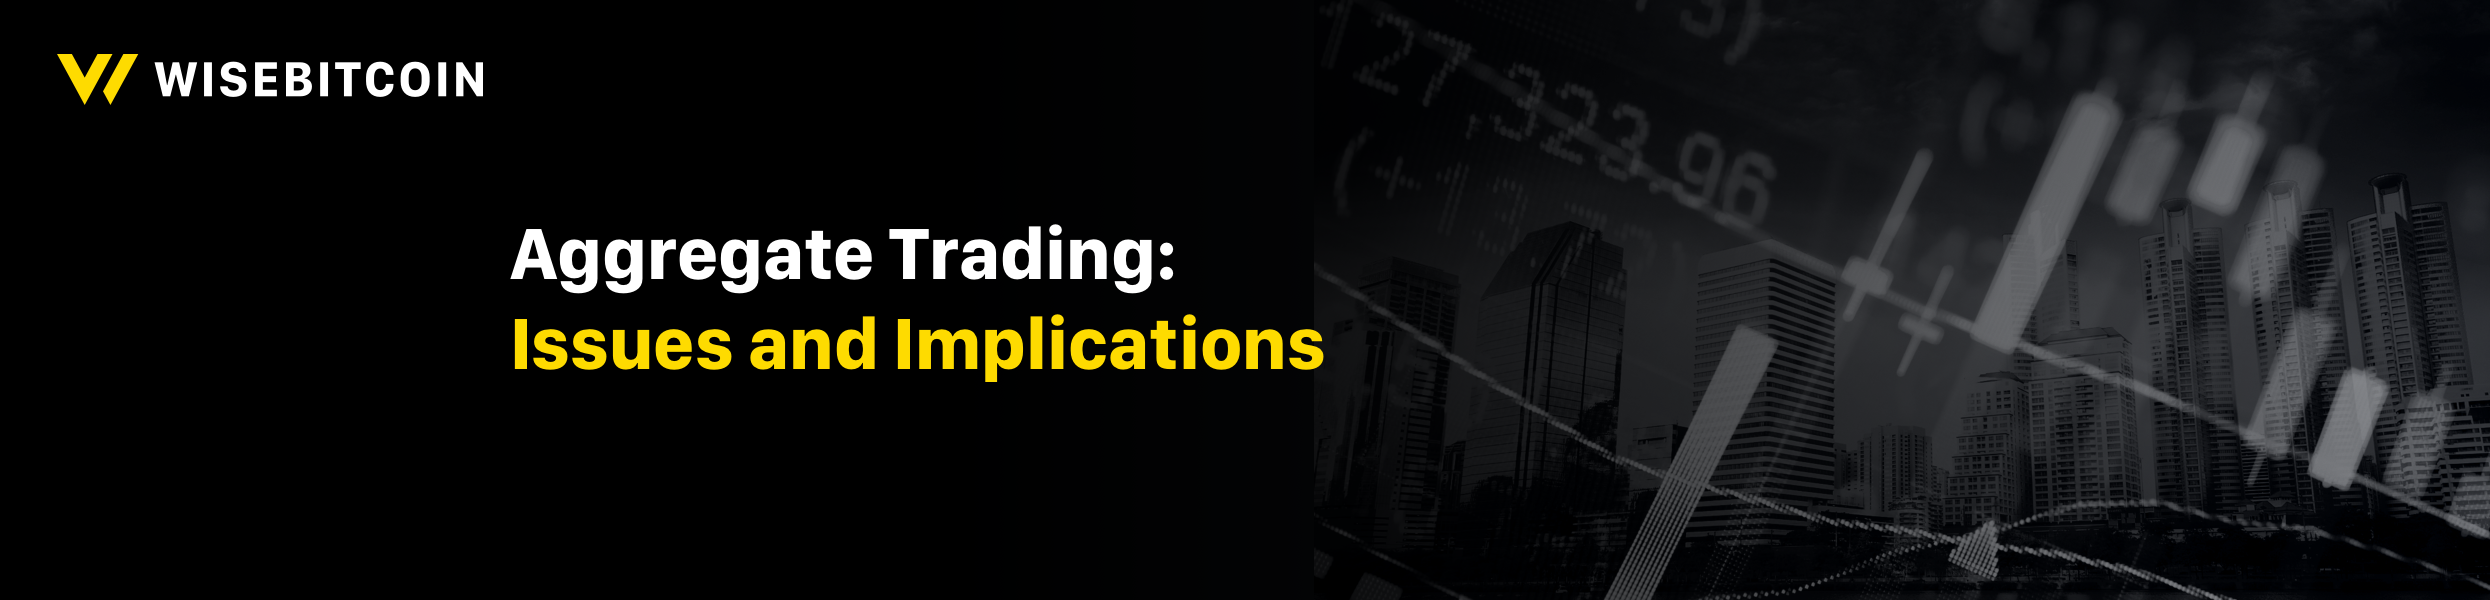 aggregate trading banner